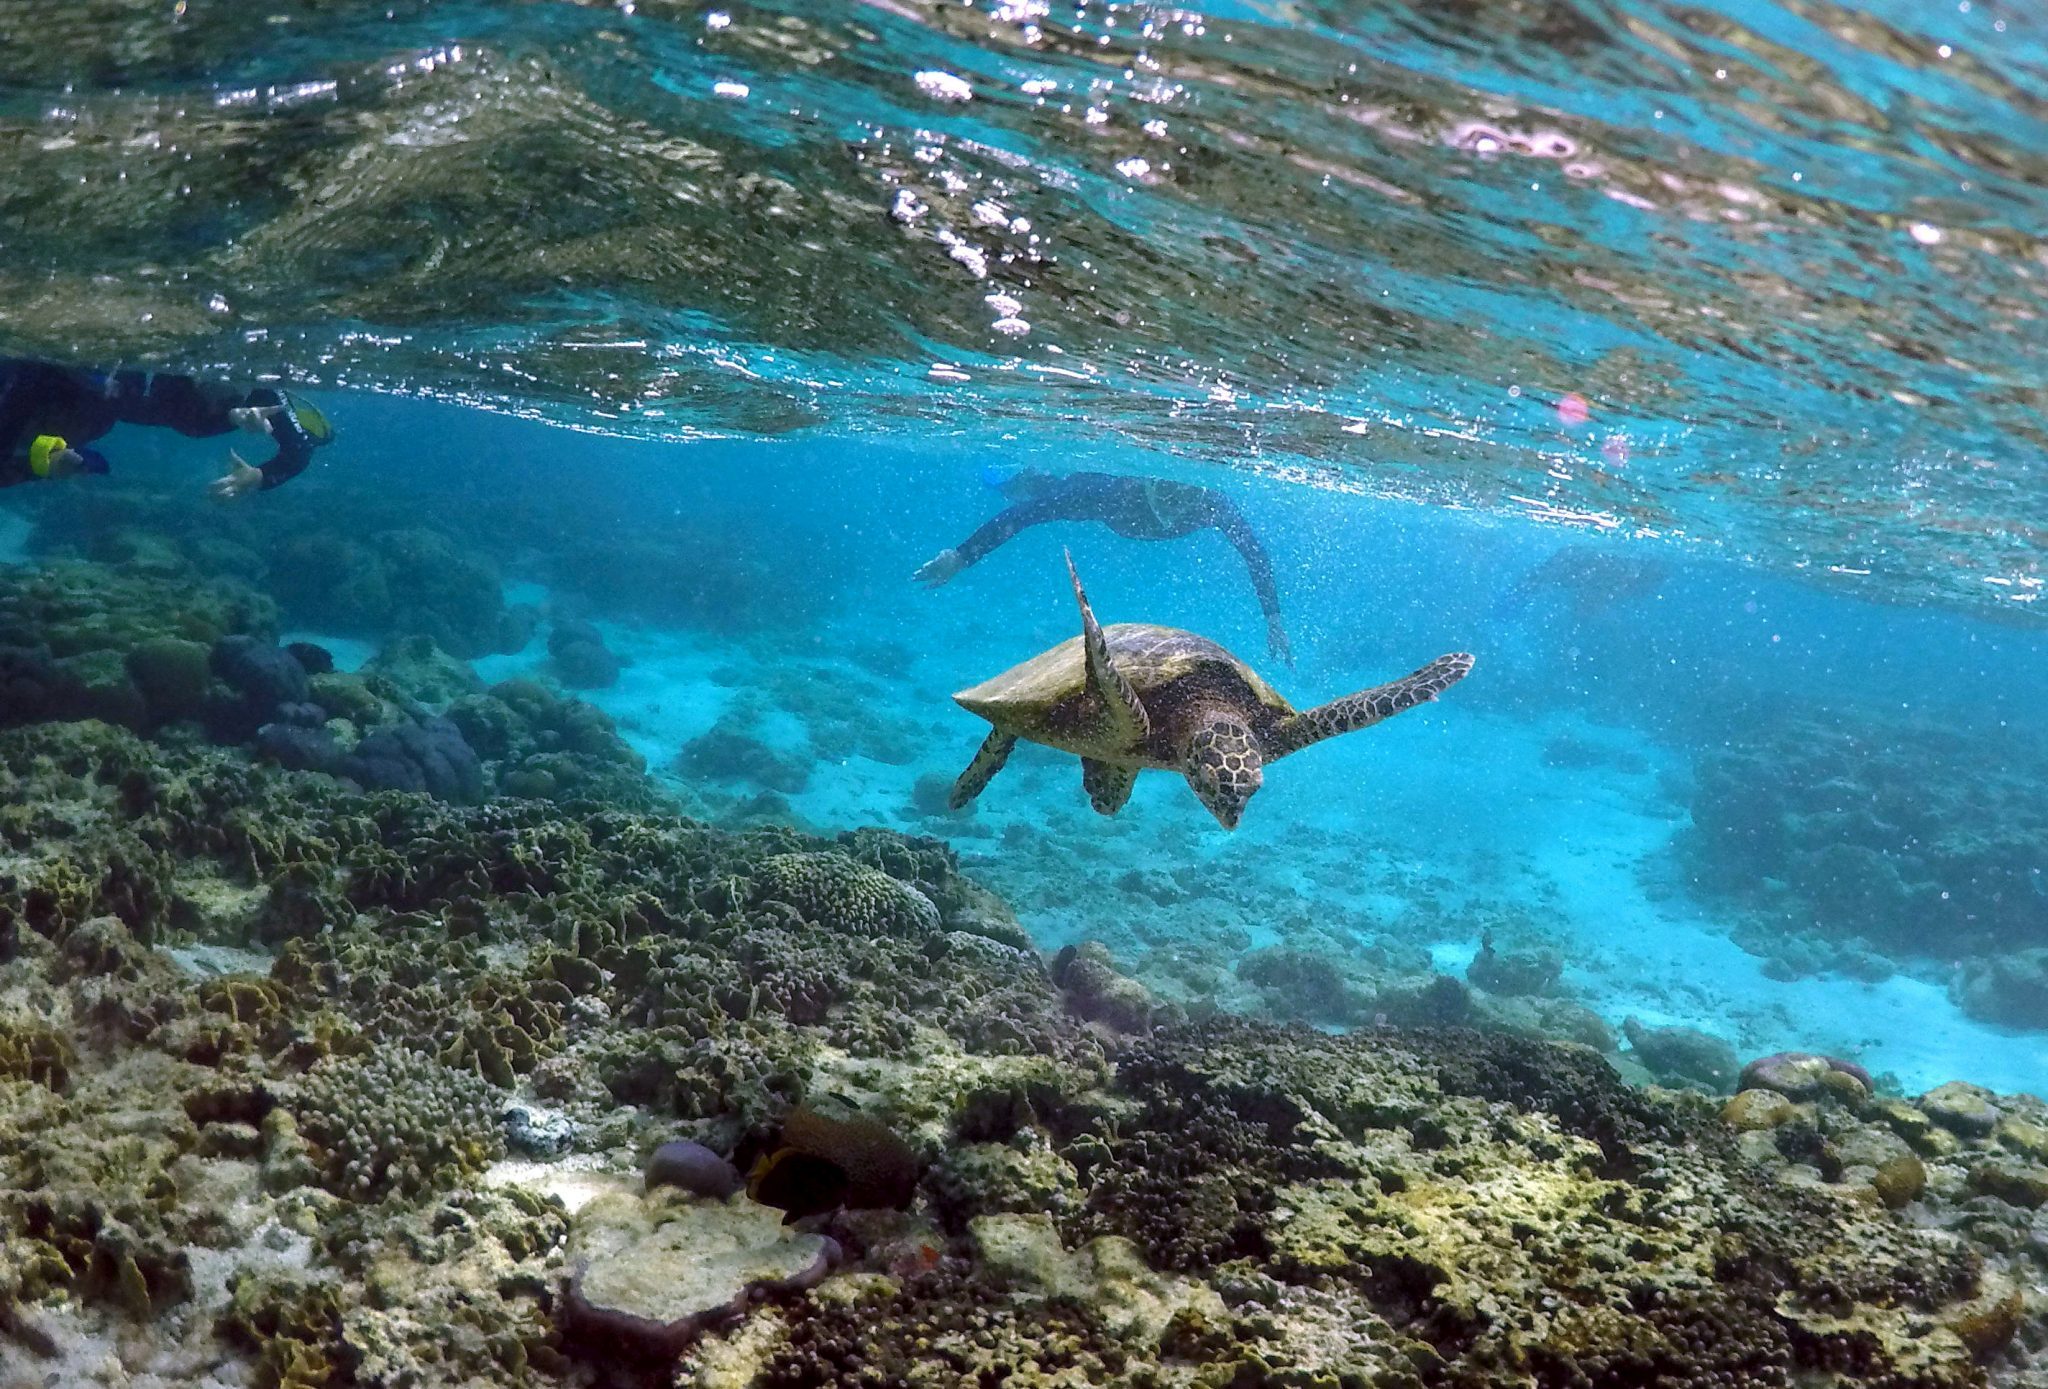 FILE PHOTO: Tourists snorkel near a turtle as it looks for food amongst the coral in the lagoon at Lady Elliot Island north-east of the town of Bundaberg in Queensland, Australia, June 9, 2015. REUTERS/David Gray/File Photo